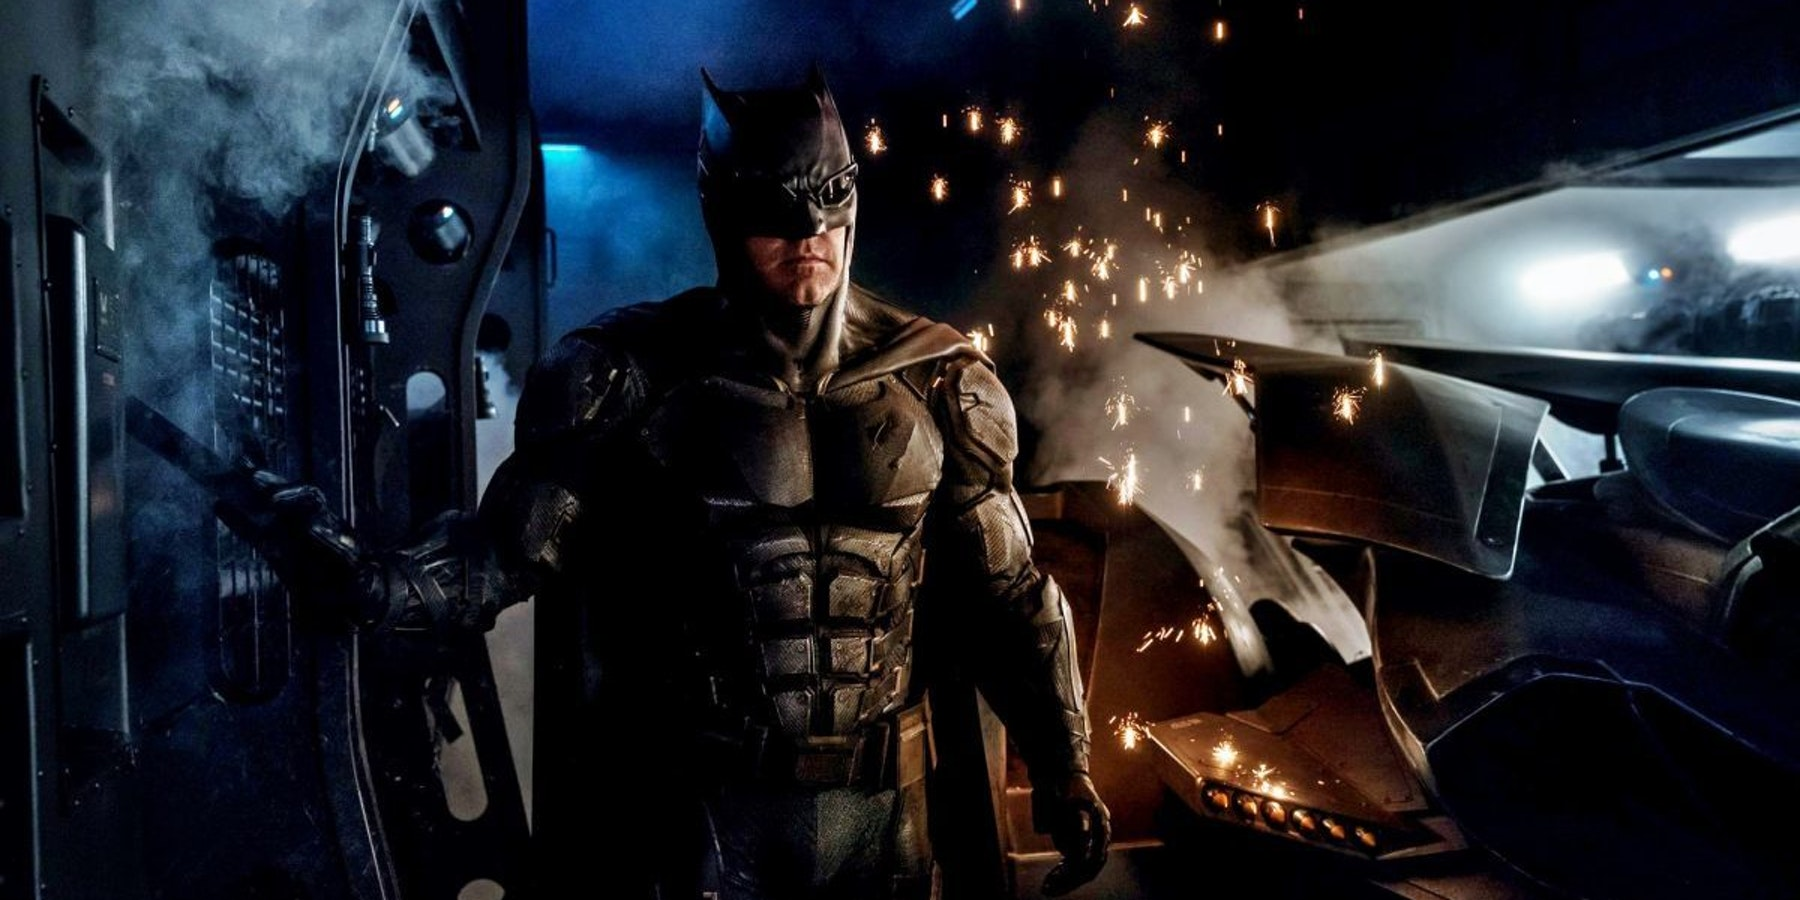 New Tactical Batman Suit from DC's Justice League movie